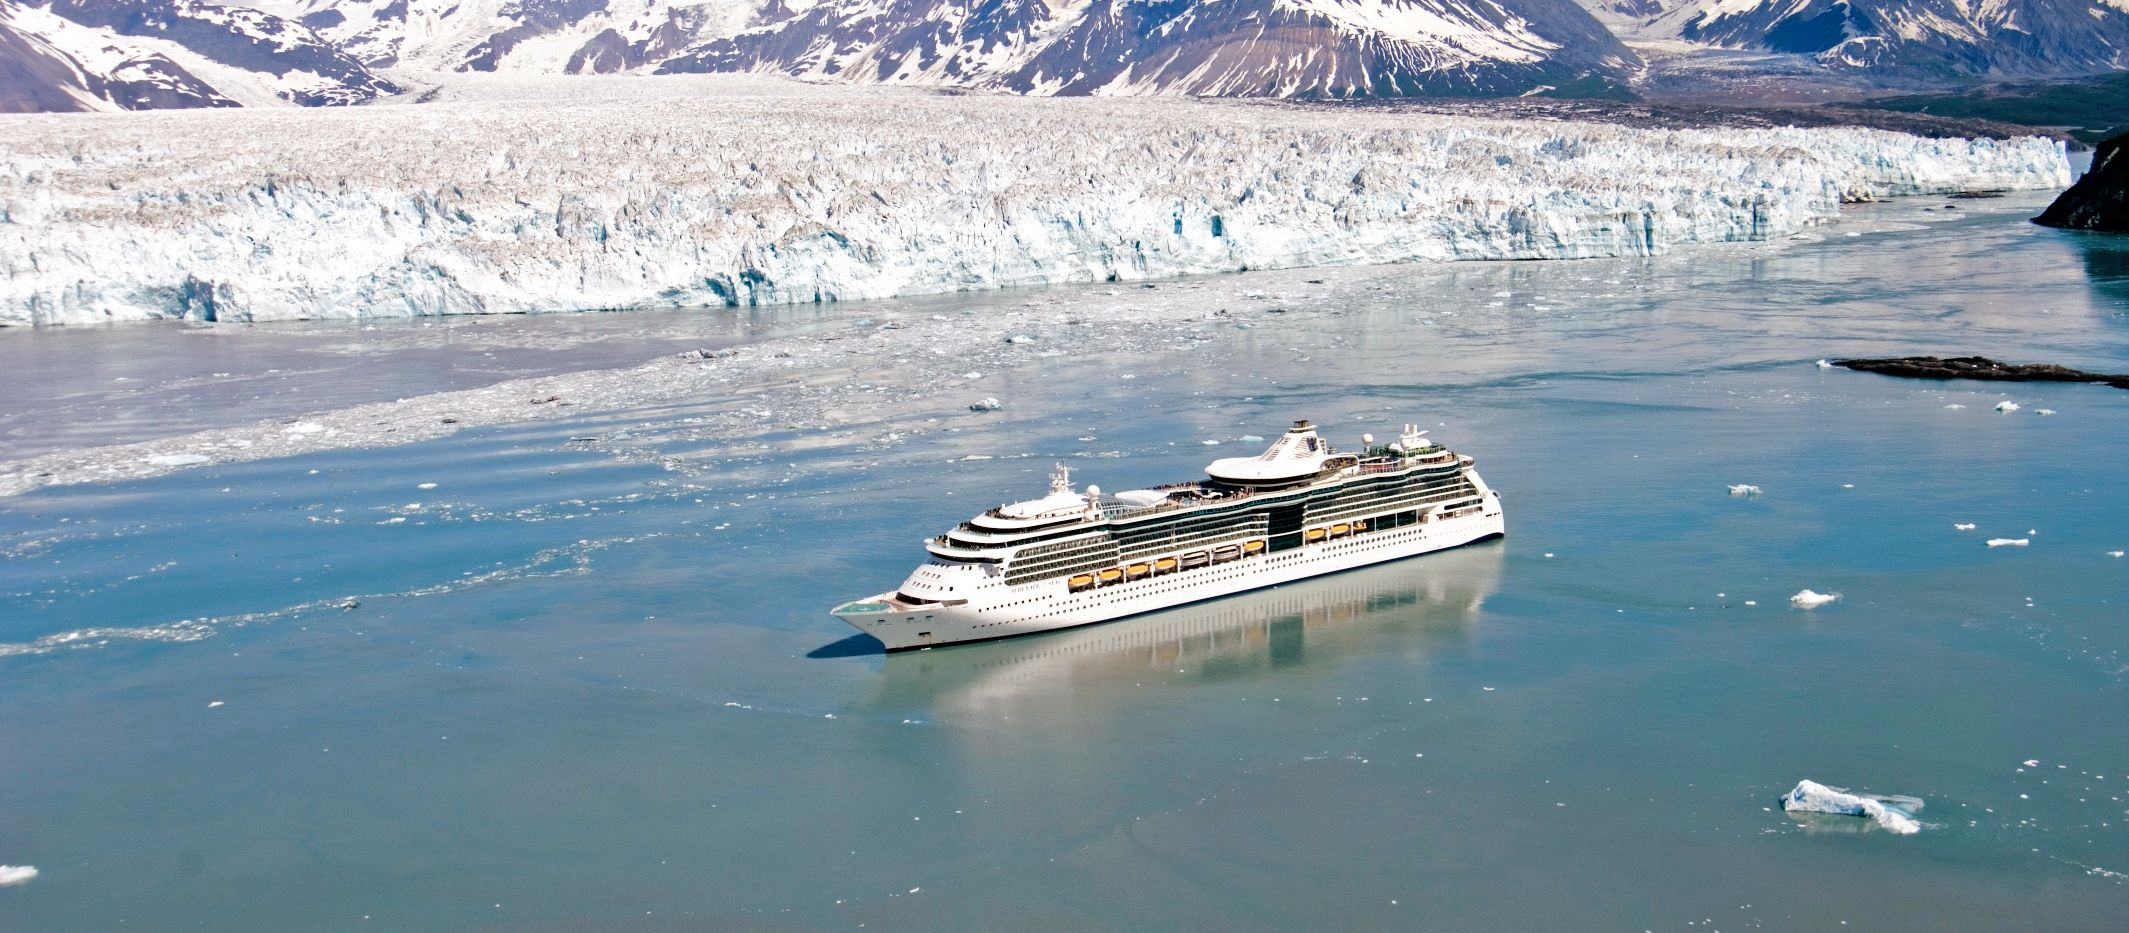 Serenade of the Seas am Hubbard-Gletscher